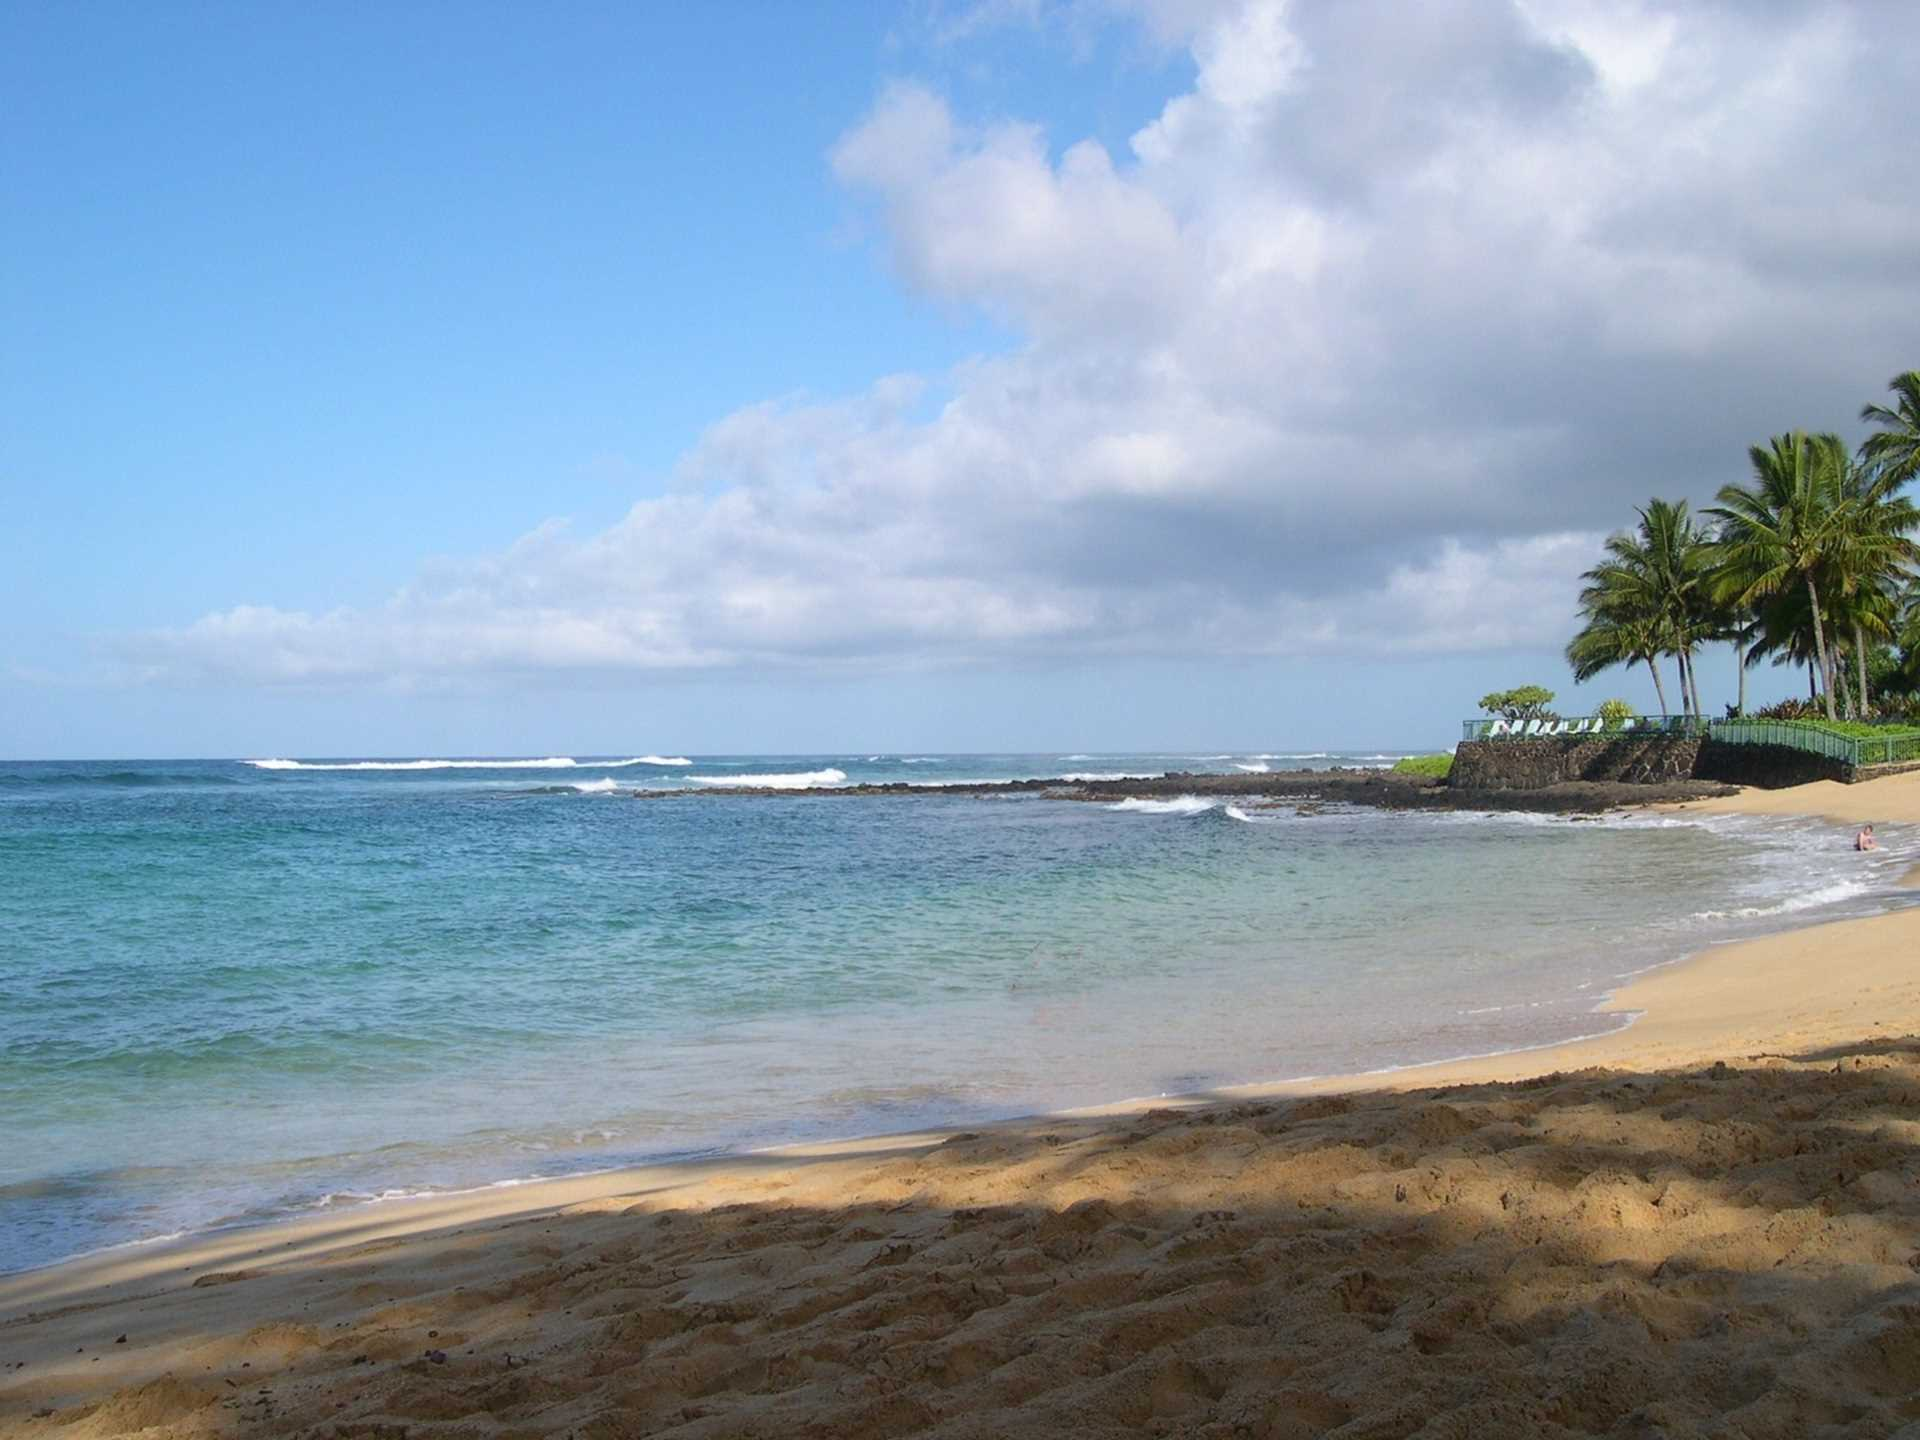 Poipu beach, great swimming, snorkeling, paddleboarding, and surfing year round